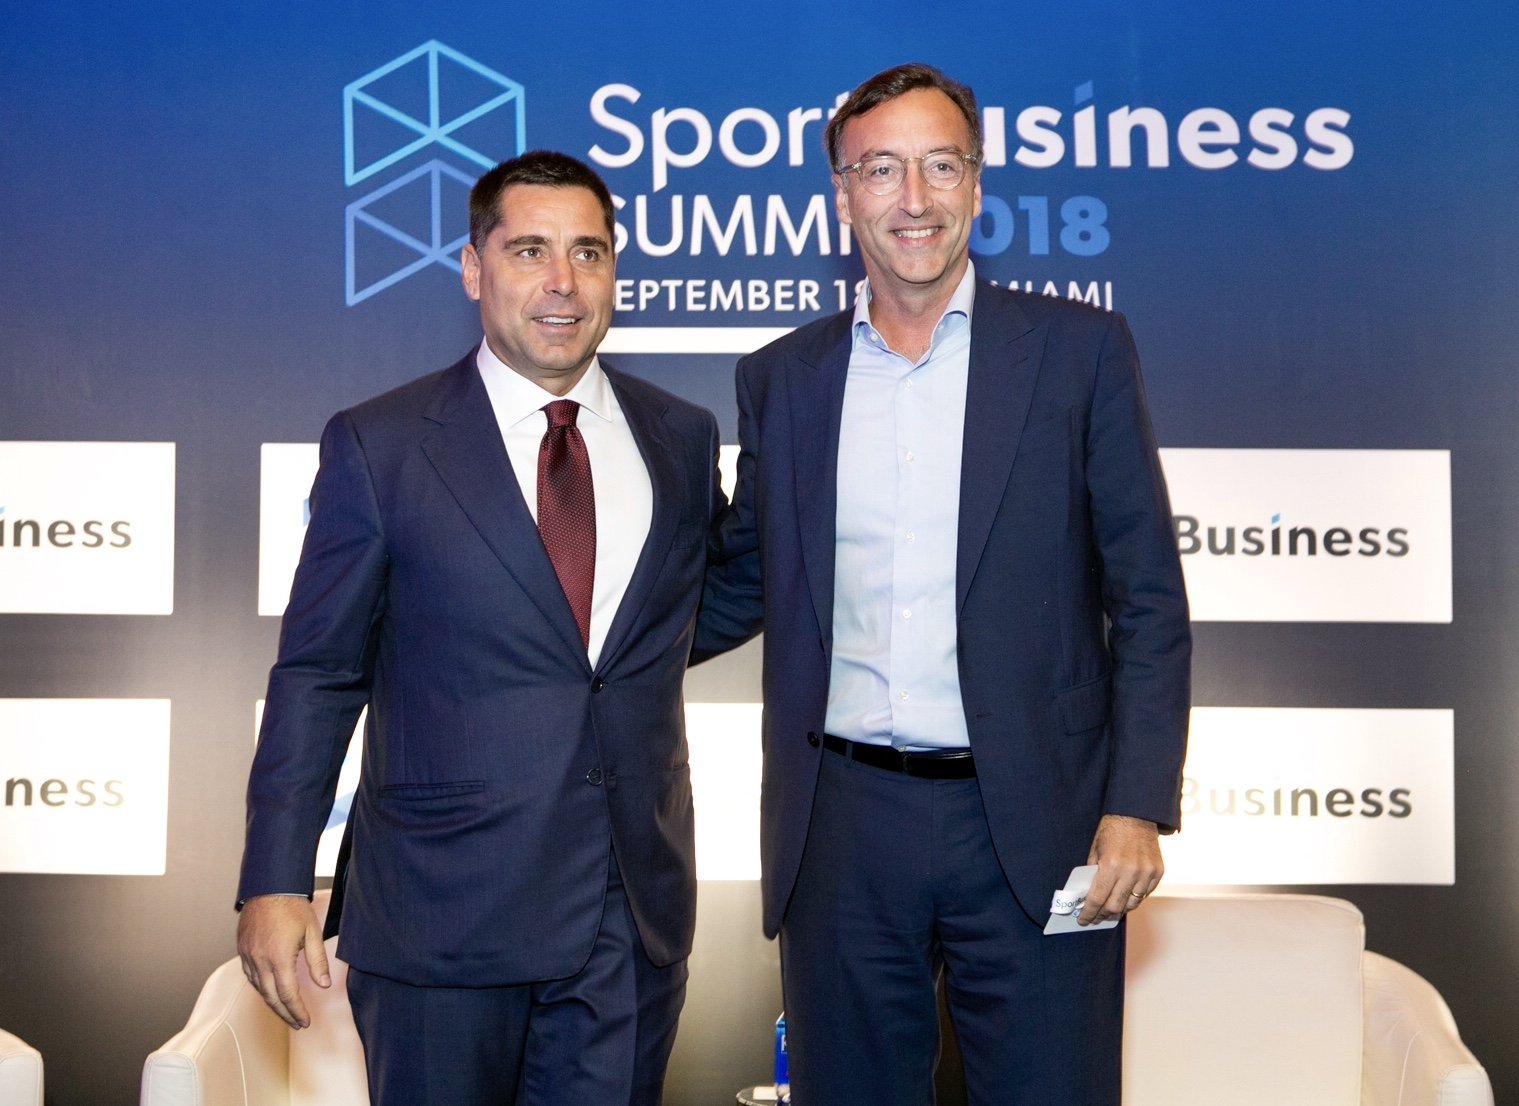 Riccardo Silva and the CEO of Silva International Investments, Marco Auletta at the SportBusiness Summit in Miami